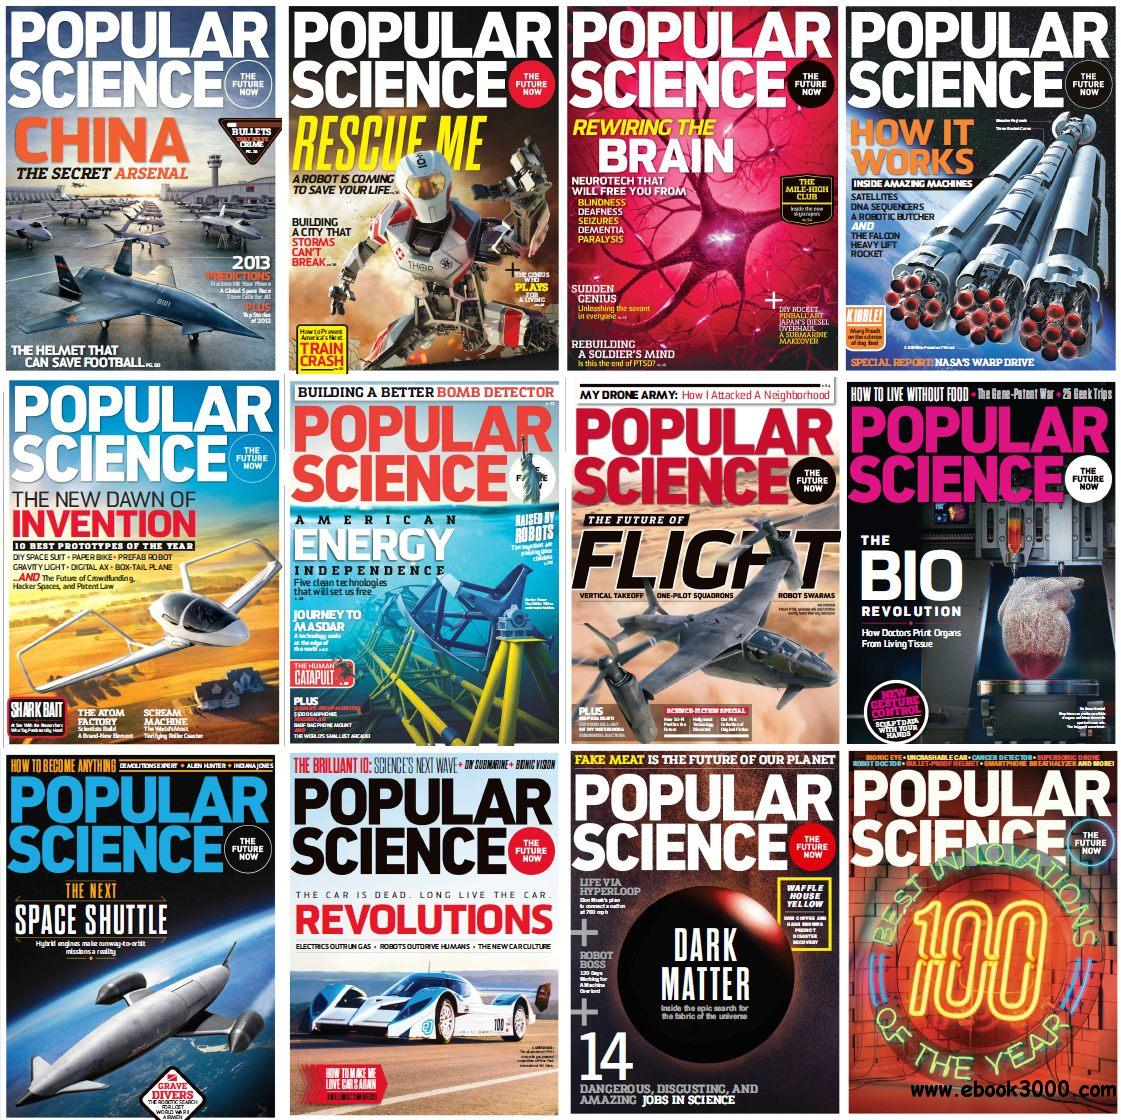 Popular Science USA - Full Year 2013 Issues Collection free download